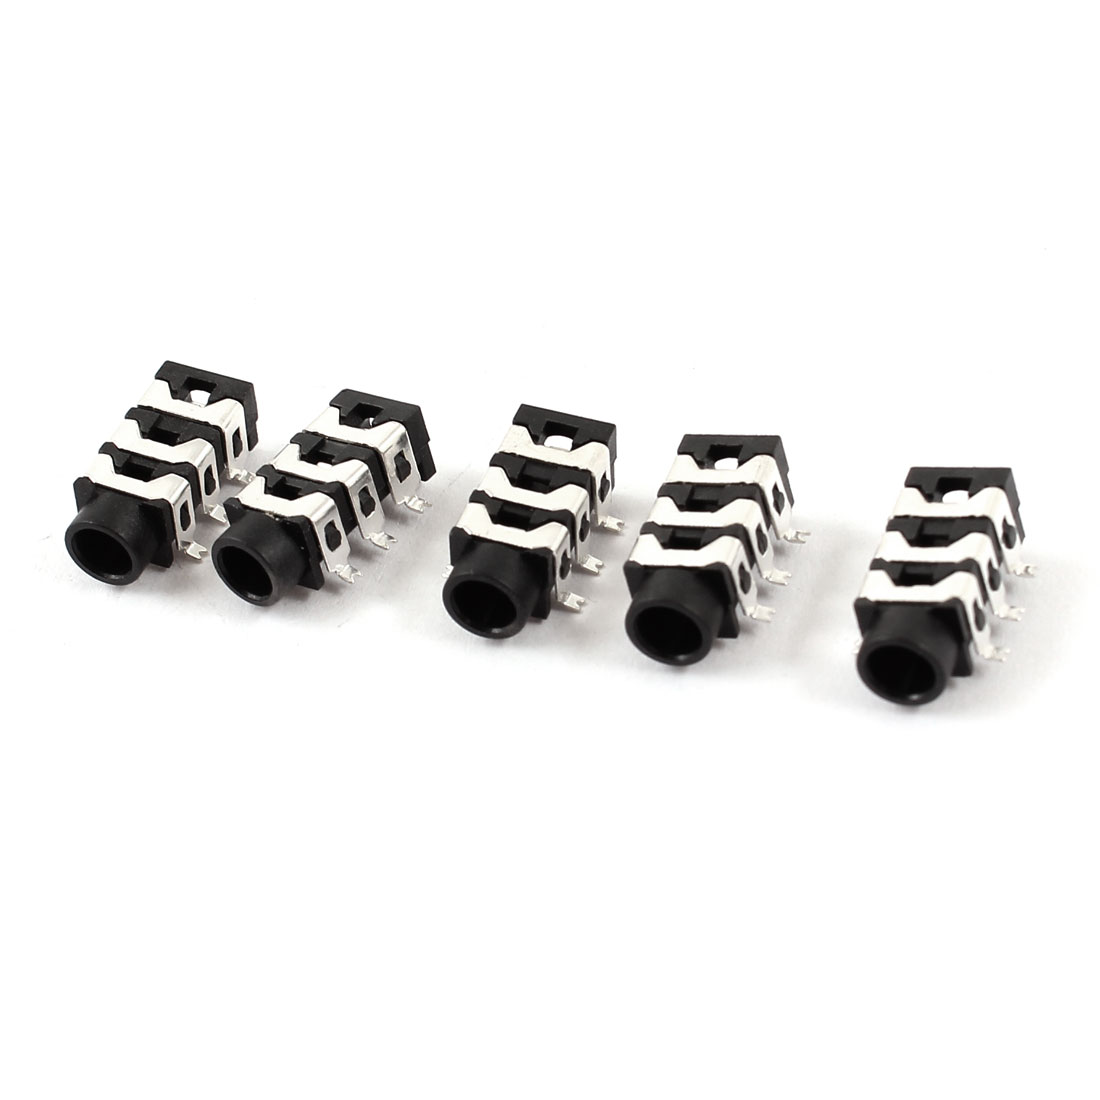 5 Pcs 6-Pin SMT SMD 3.5mm Stereo Earphone Jack Socket Connectors